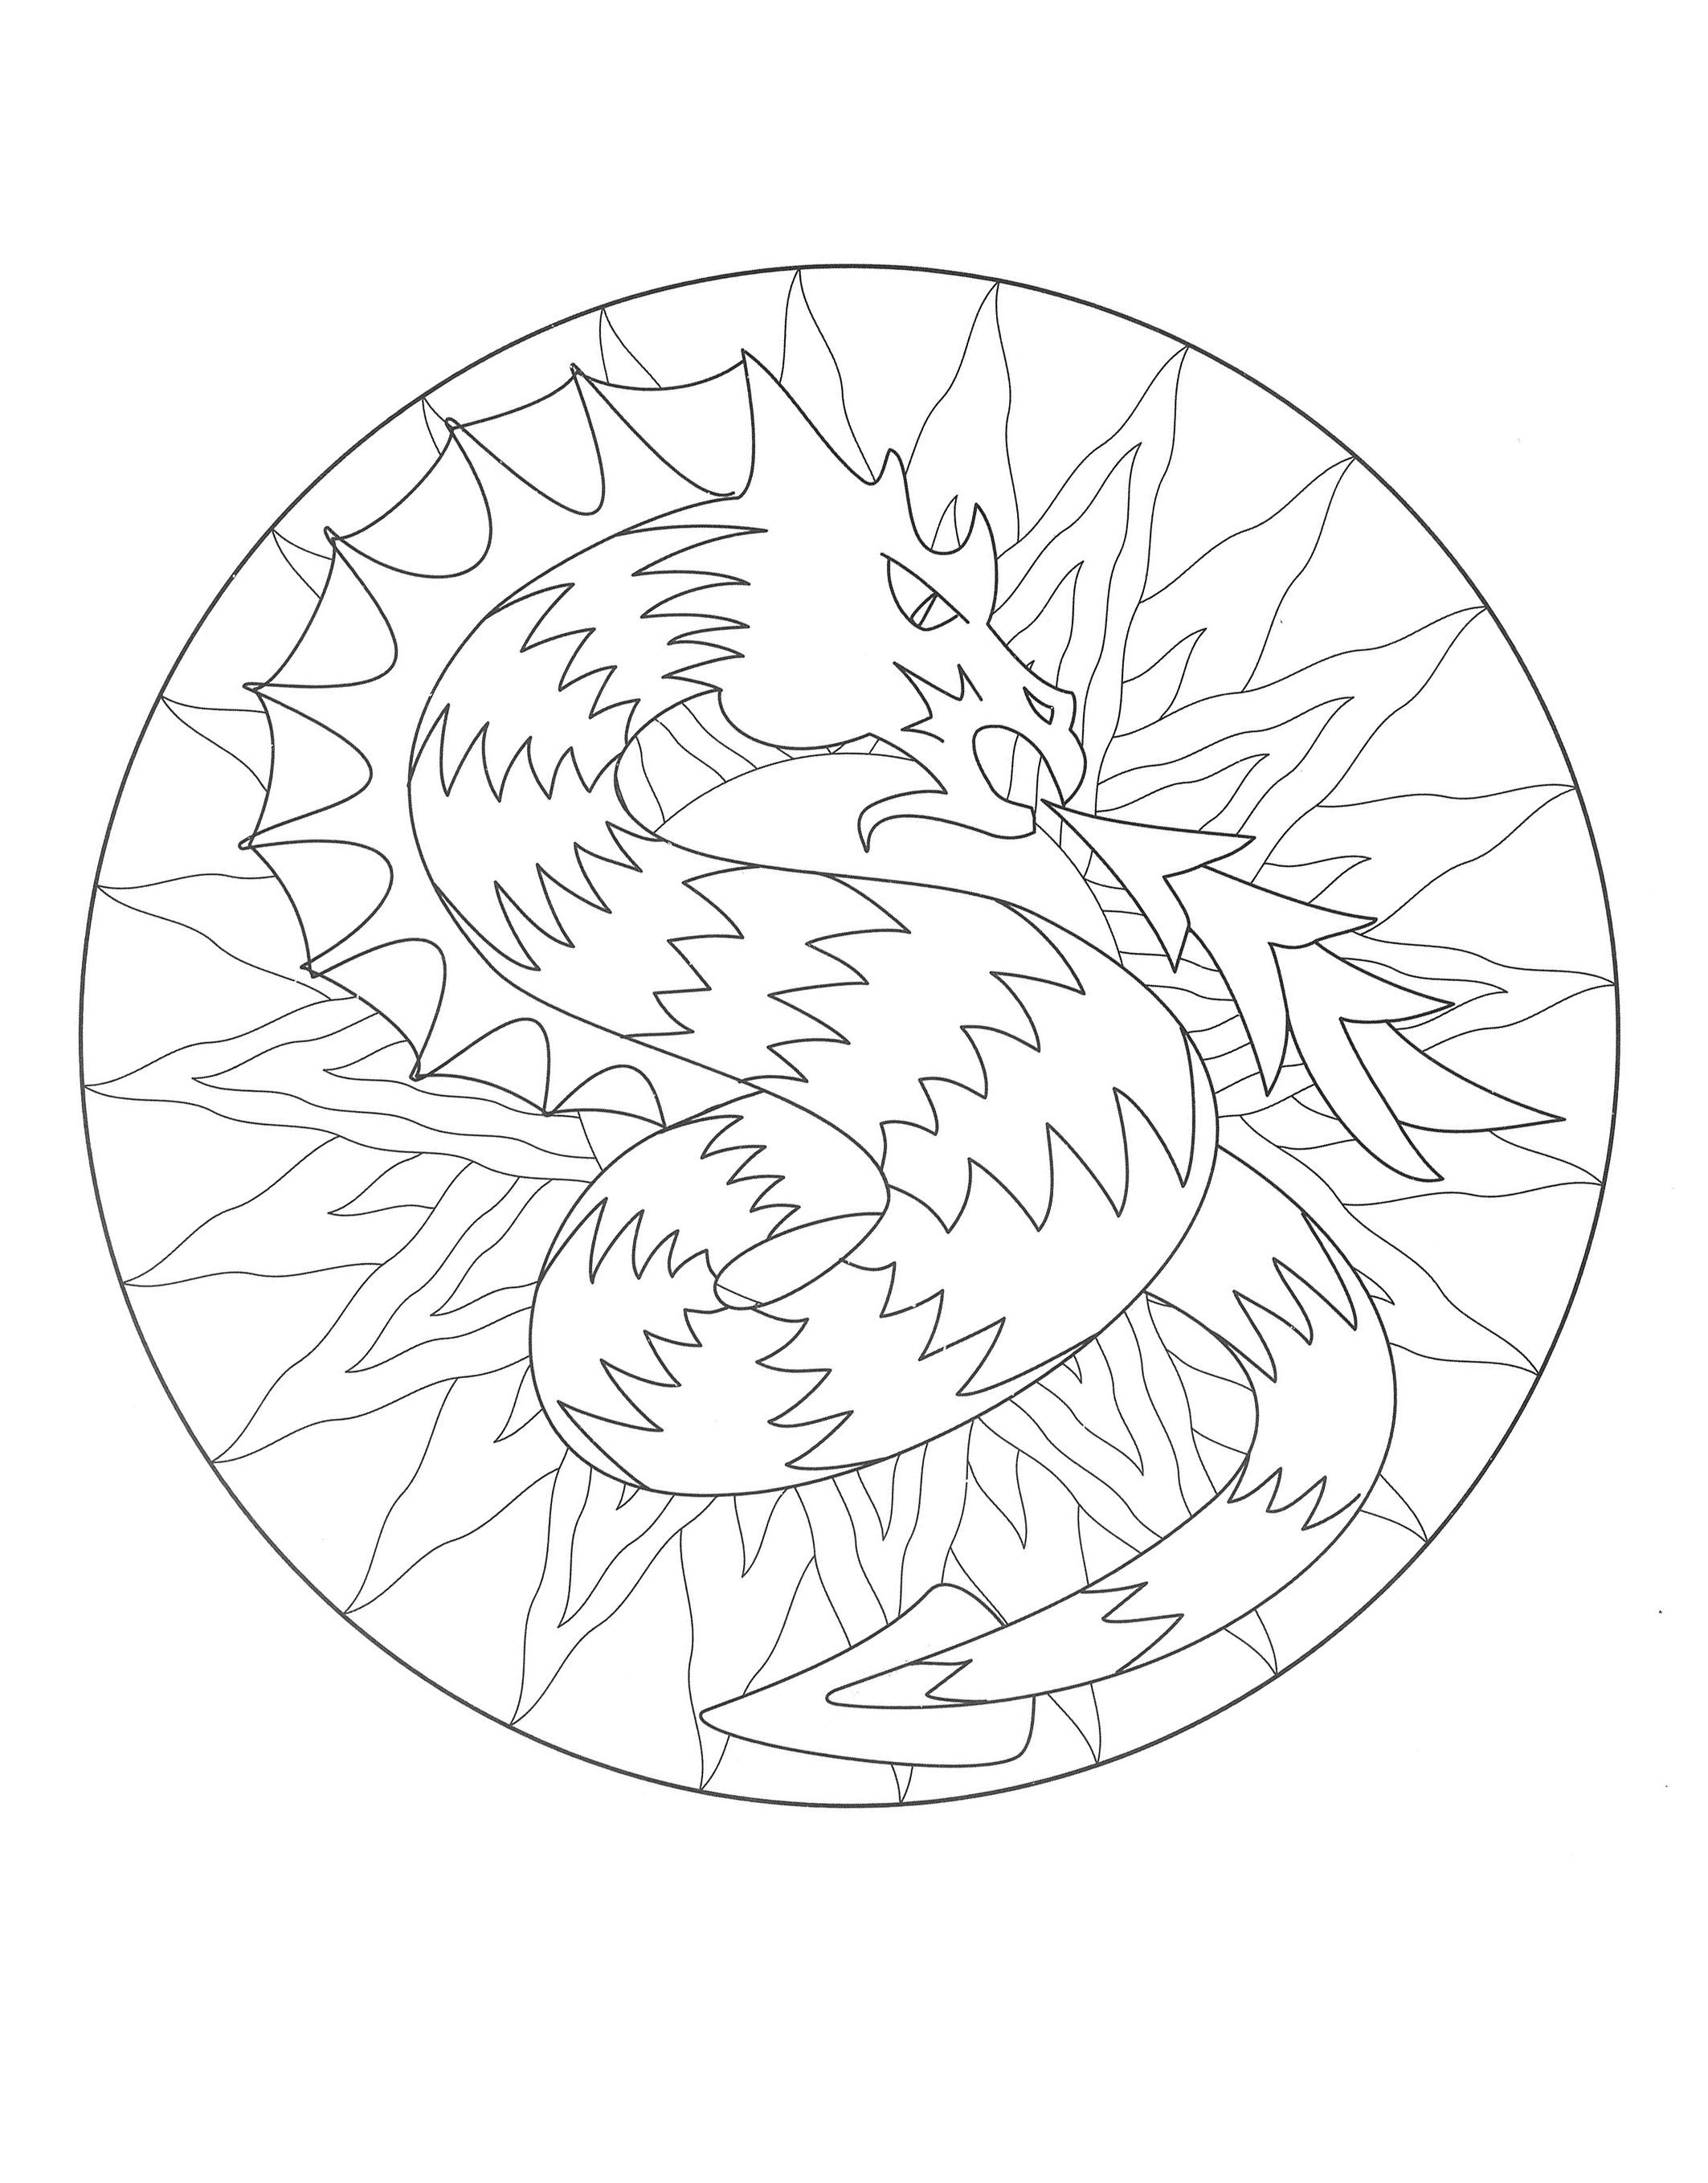 2126x2717 Free Mandala Coloring Page, Representing A Dragon To Download